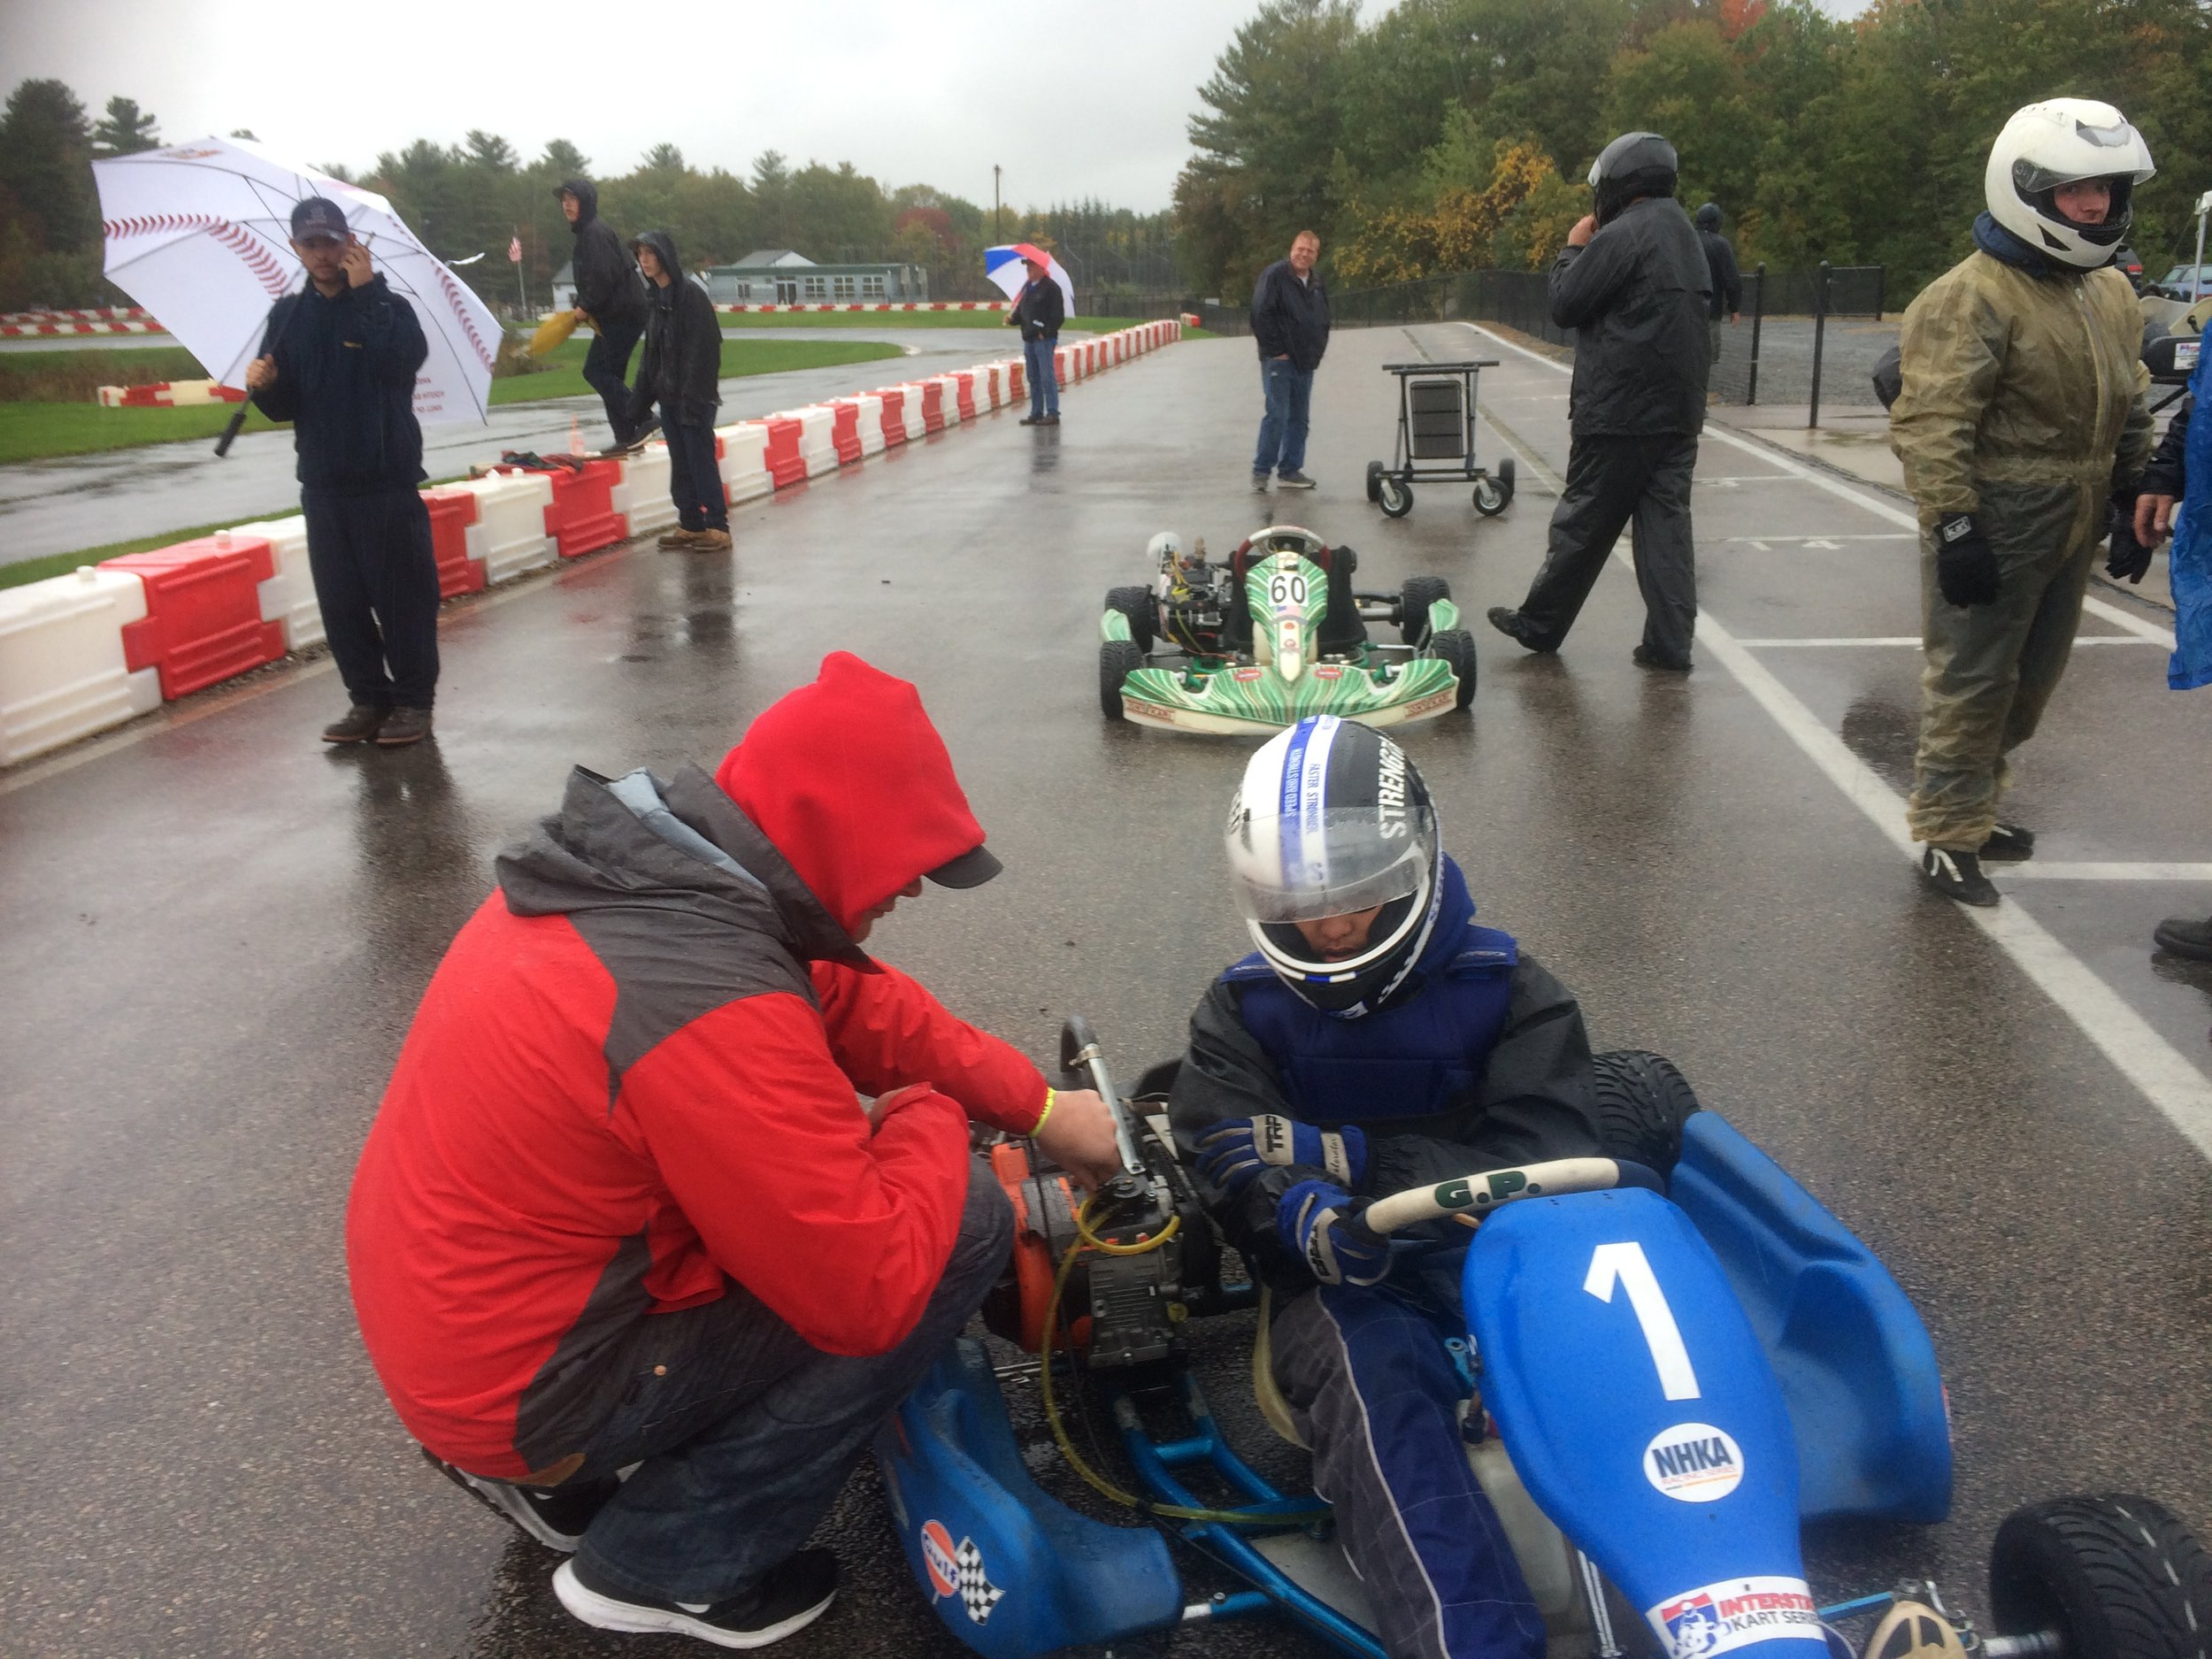 Working with his racing coach